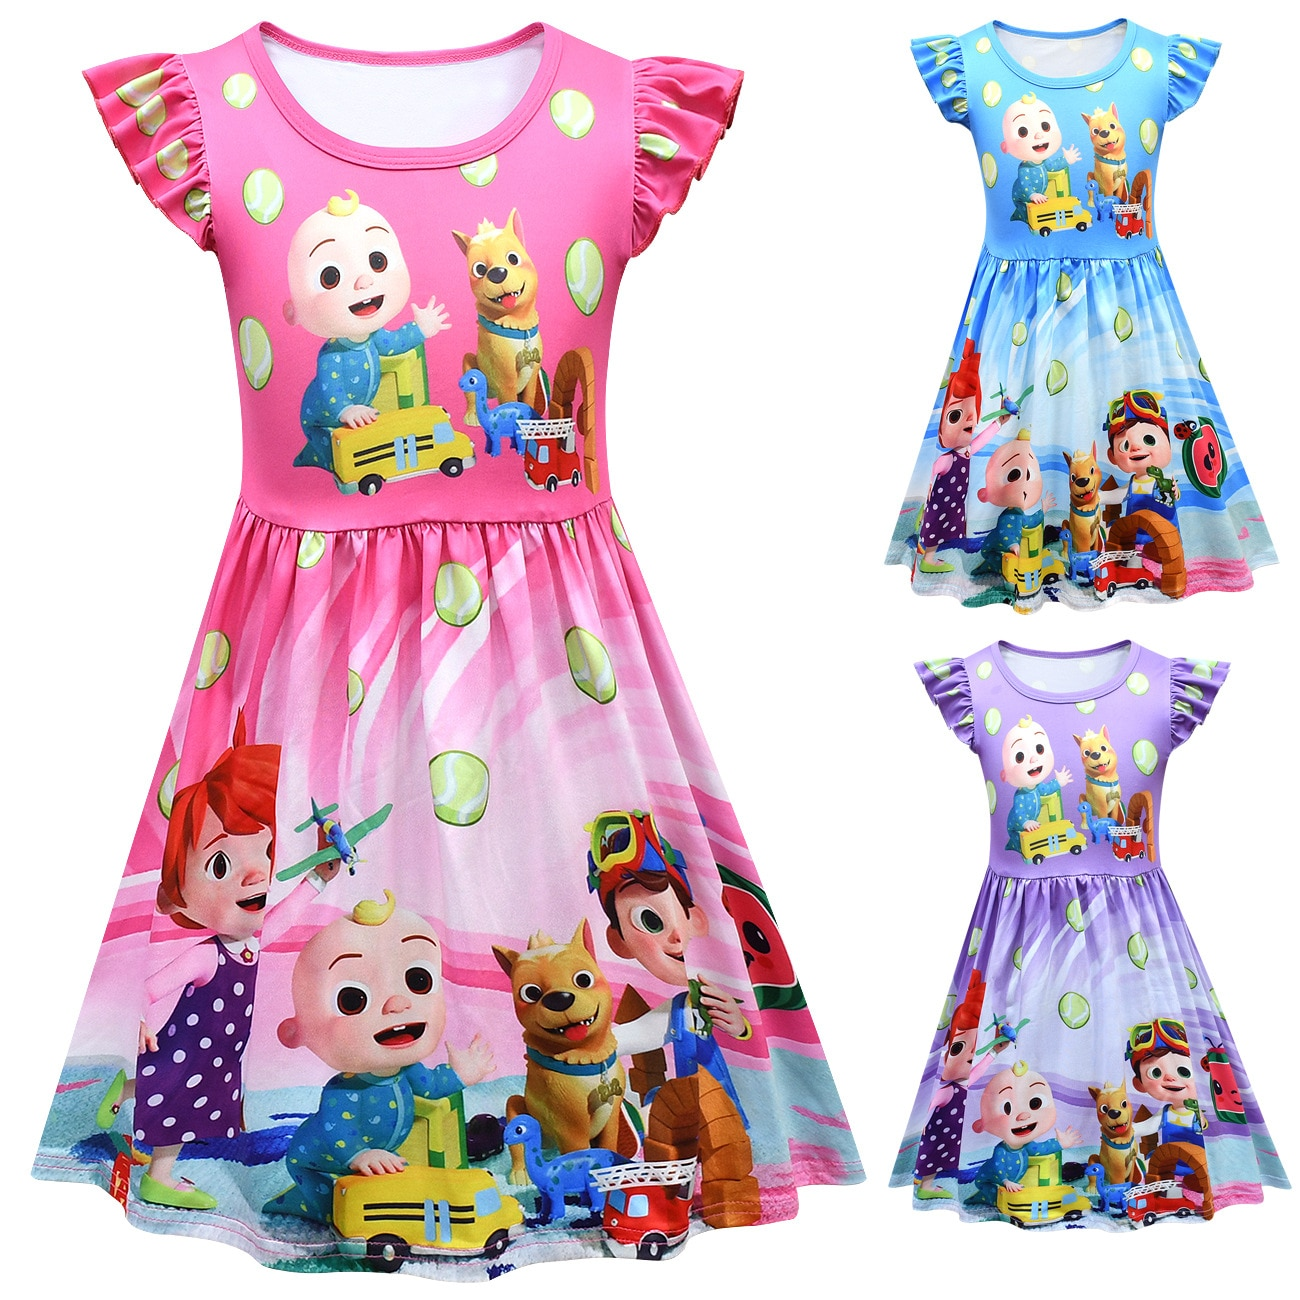 2021 Summer Baby Girls Dresses Cute JJ Cocomelon Print Princess Party Dress for Girls Vestidos for Wedding Clothes Kids Costumes